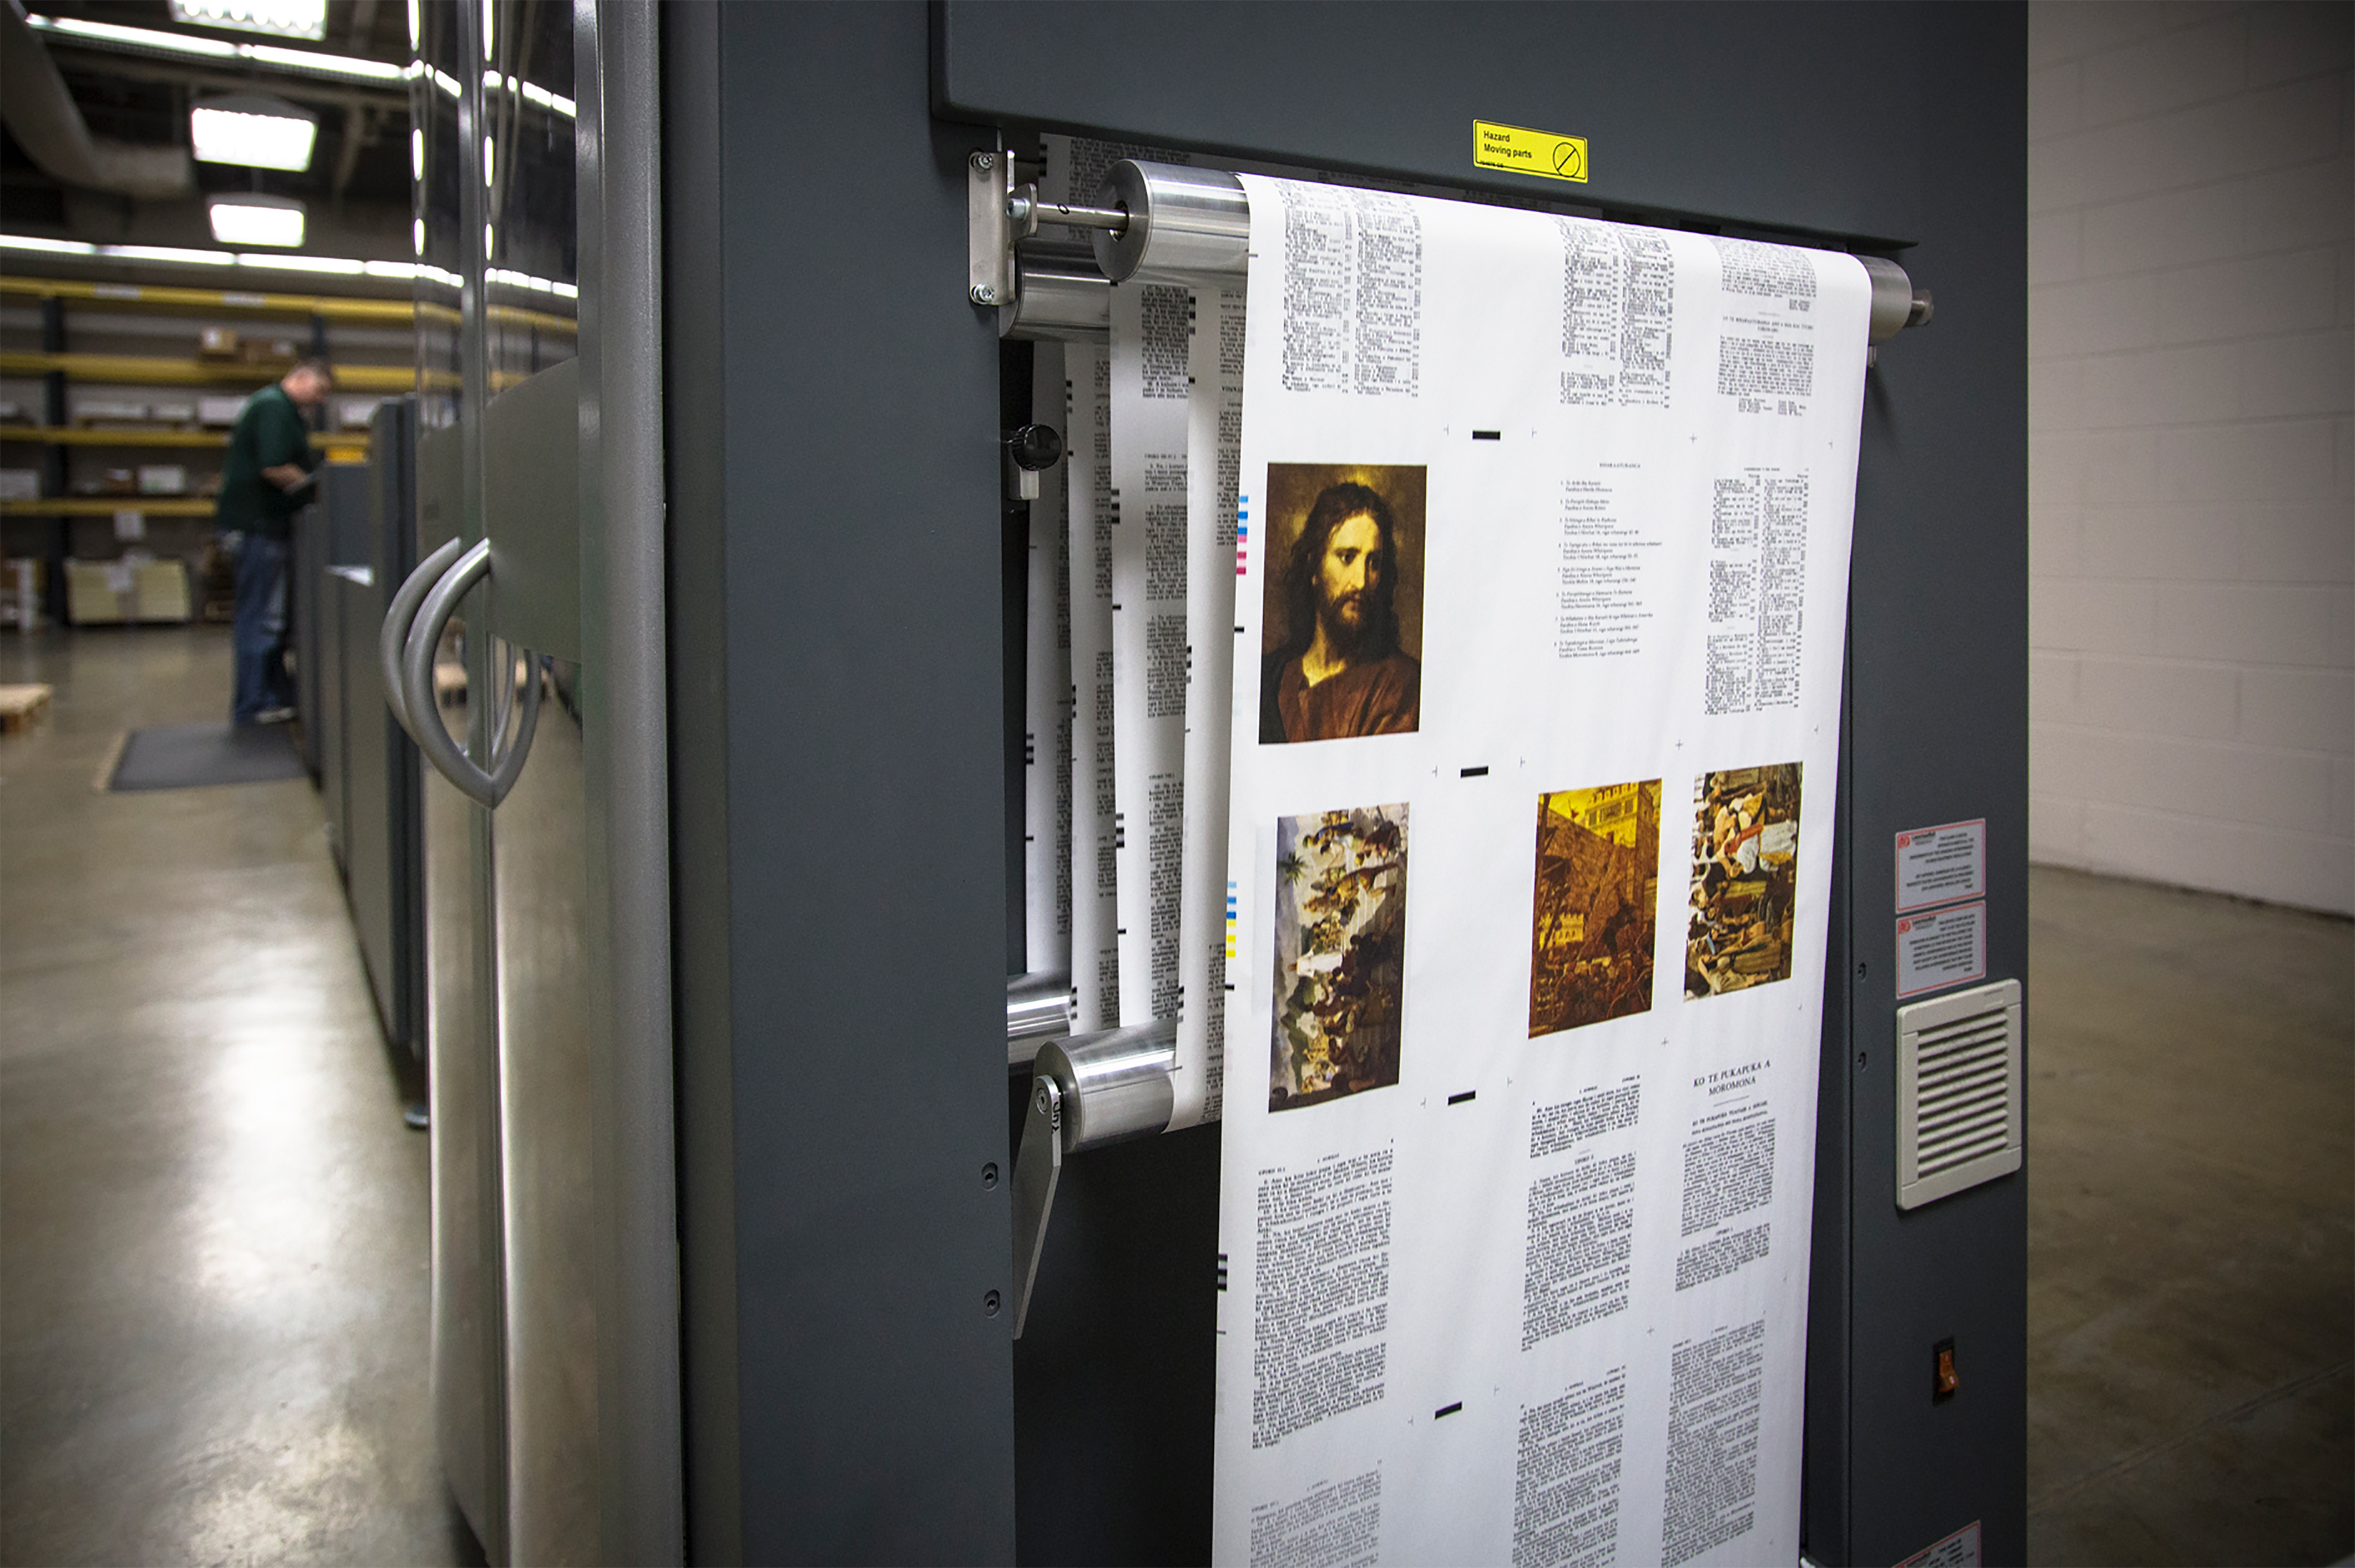 Savings created by the new printer purchased by the Church in 2013 allows translations of scriptures to be printed in more languages at lower costs.